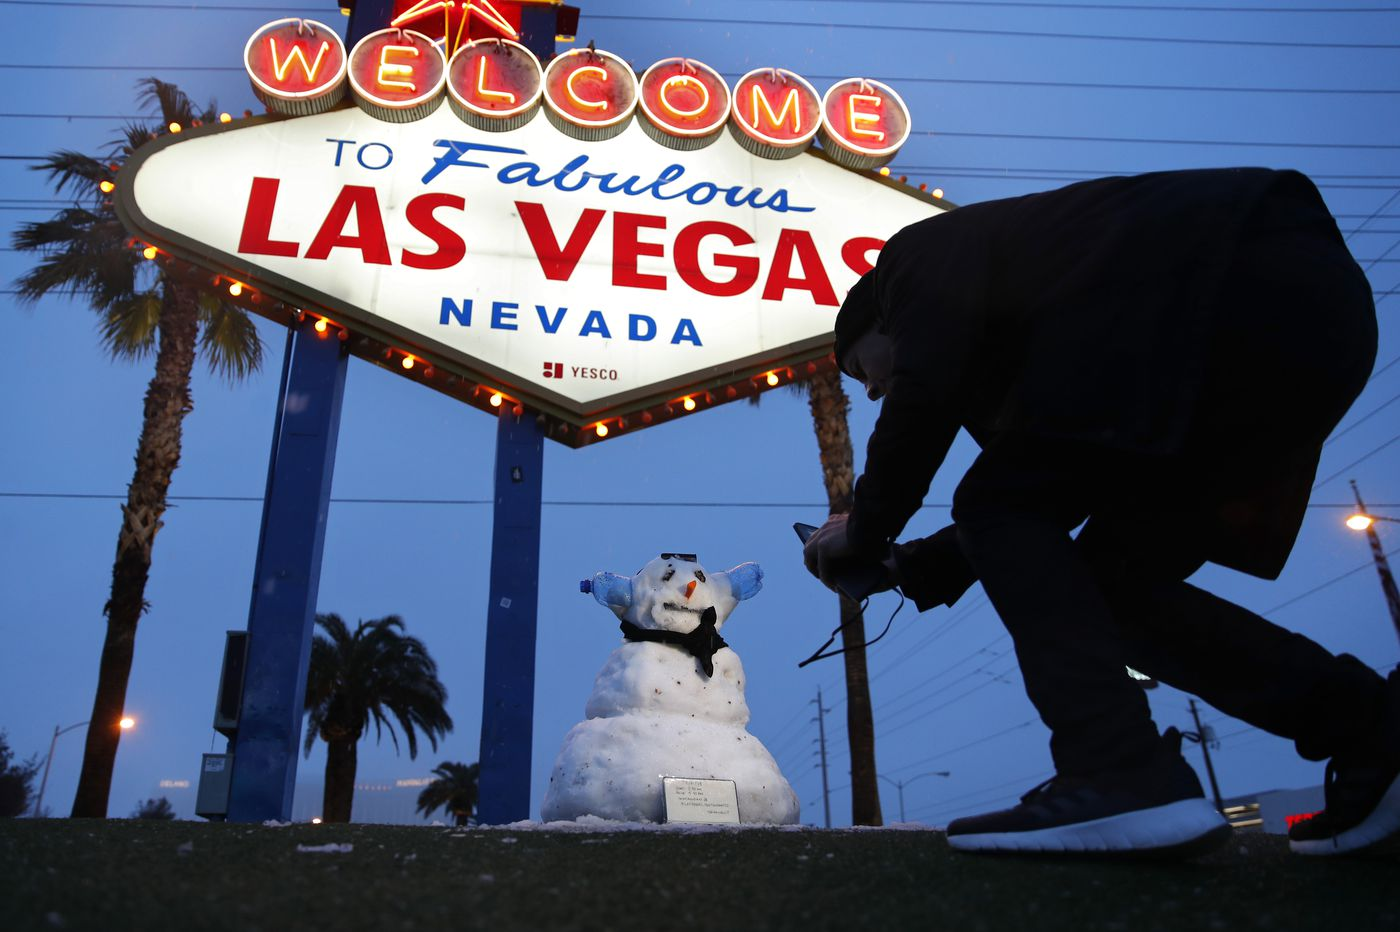 In Las Vegas, divorce parties and not just wedding chapels are a lure